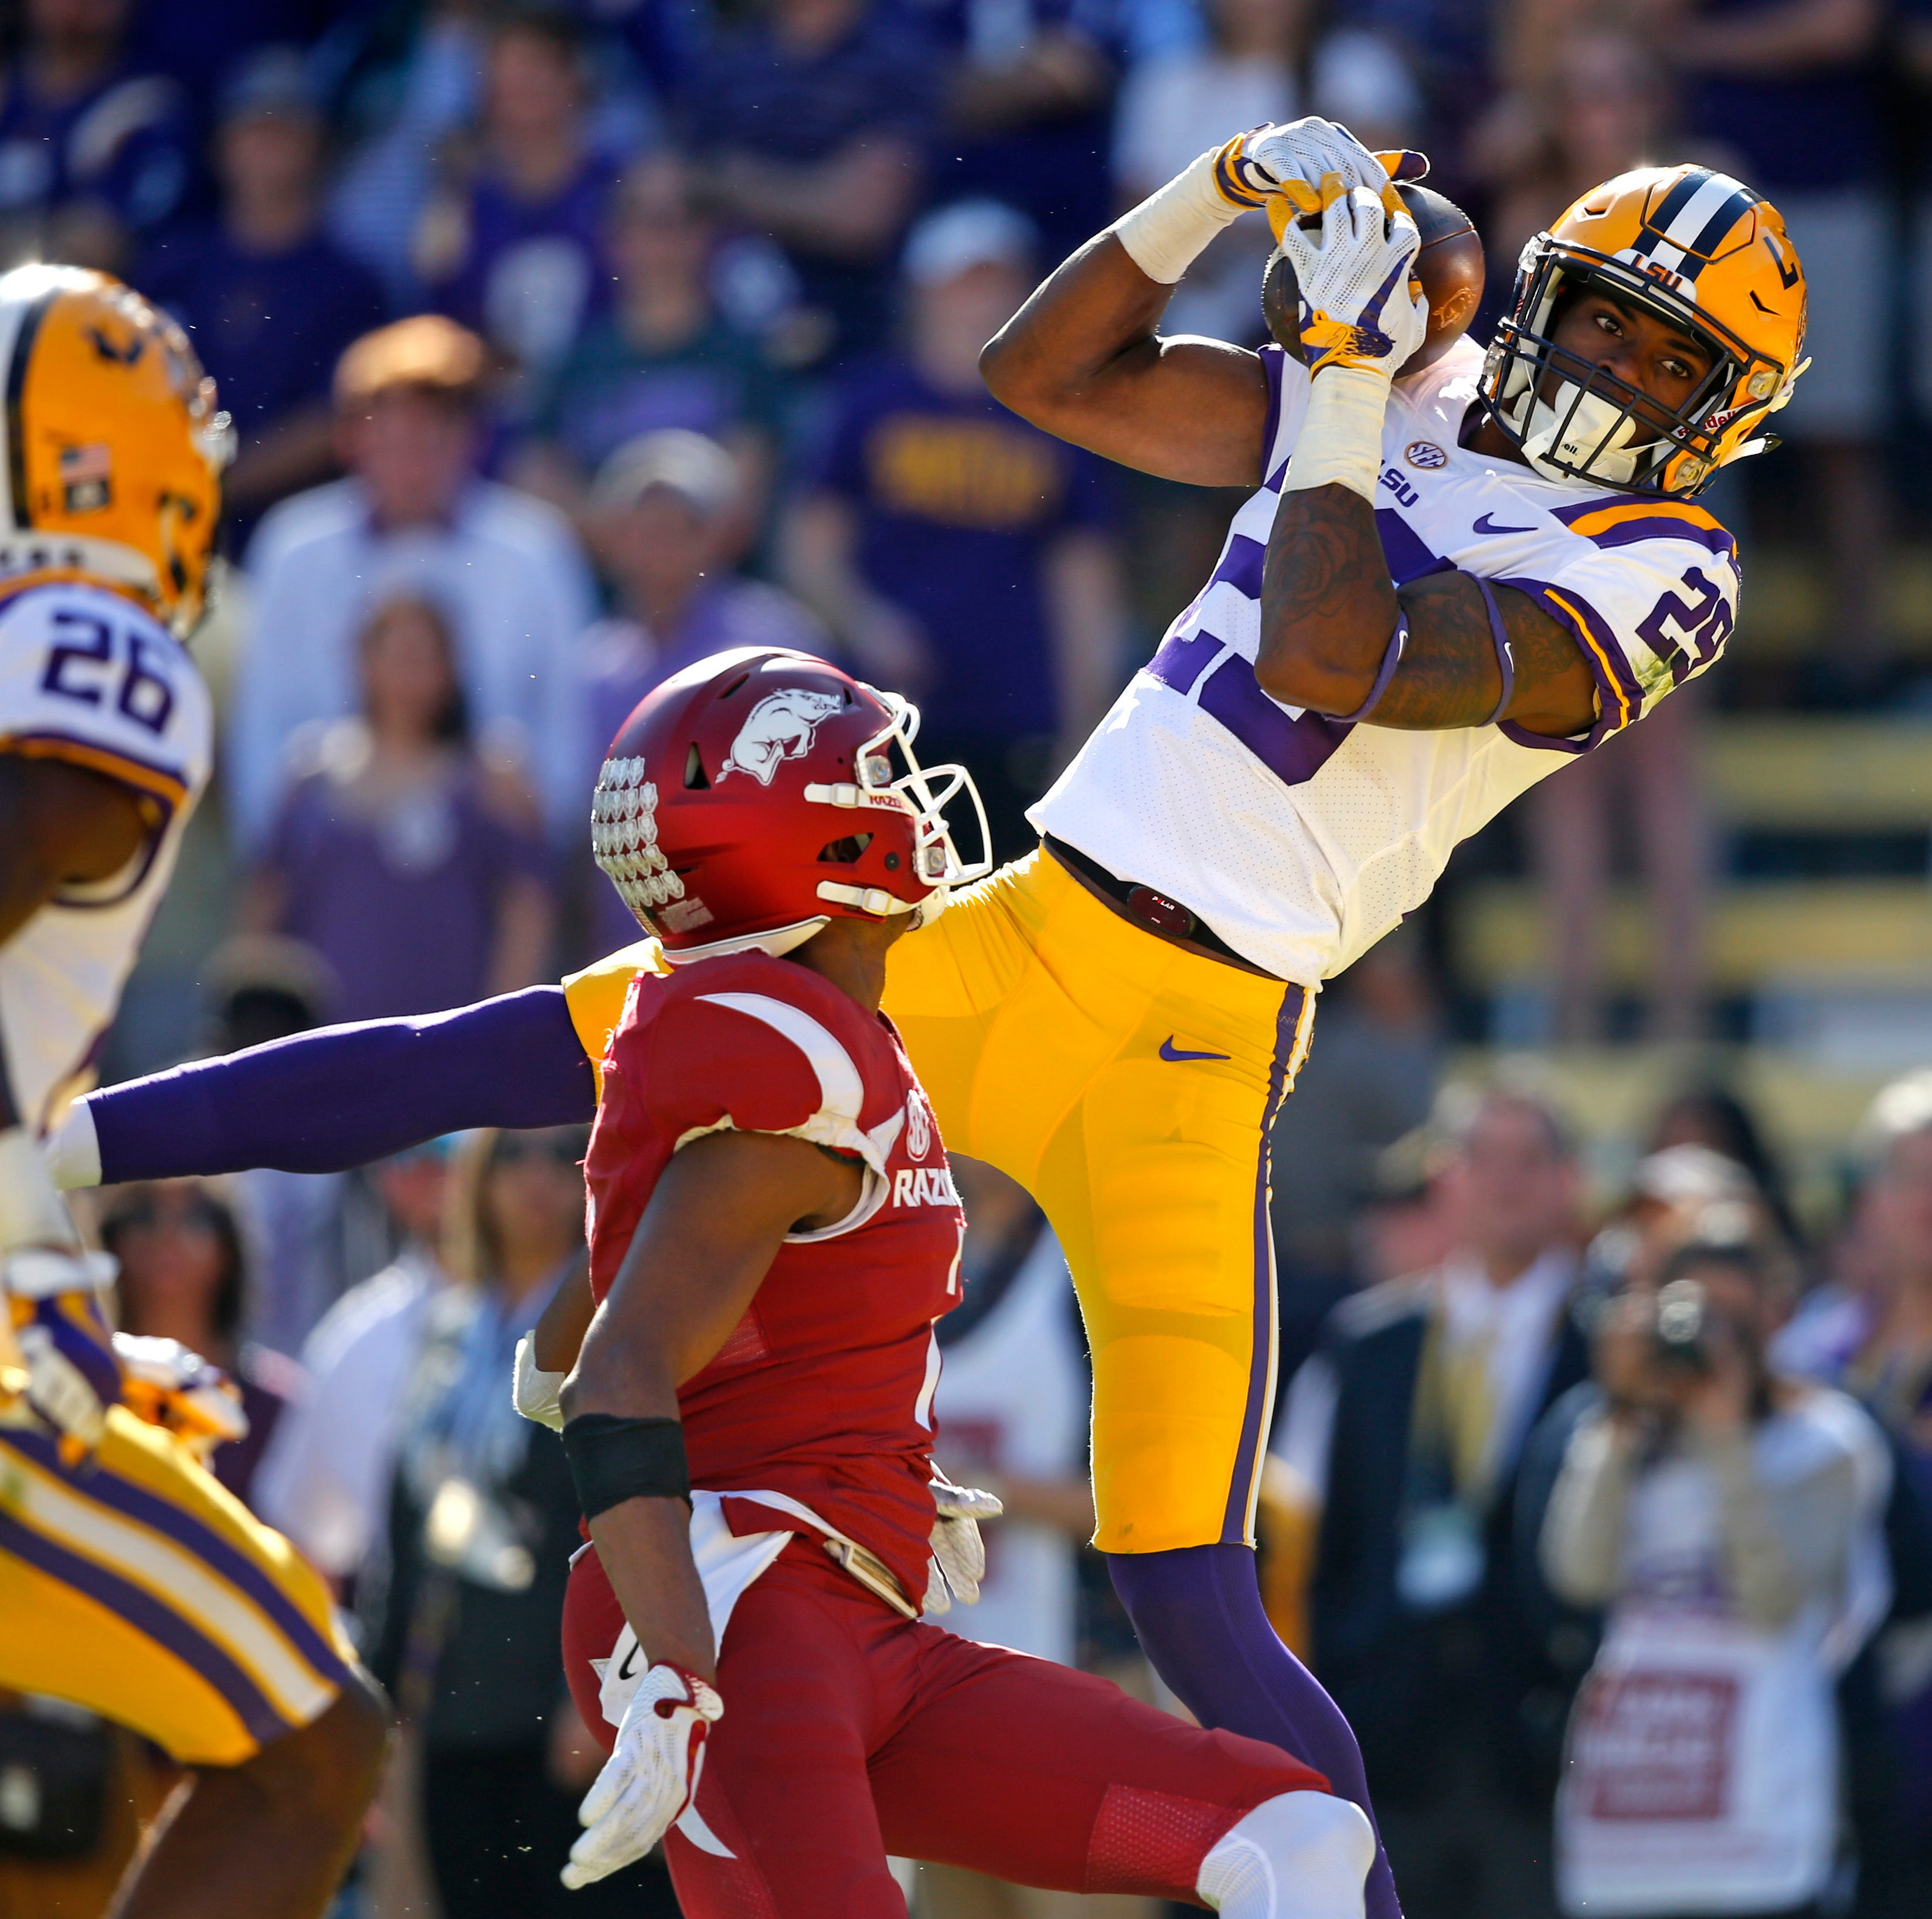 Ready for primetime: Greedy Williams takes aim at Deion Sanders